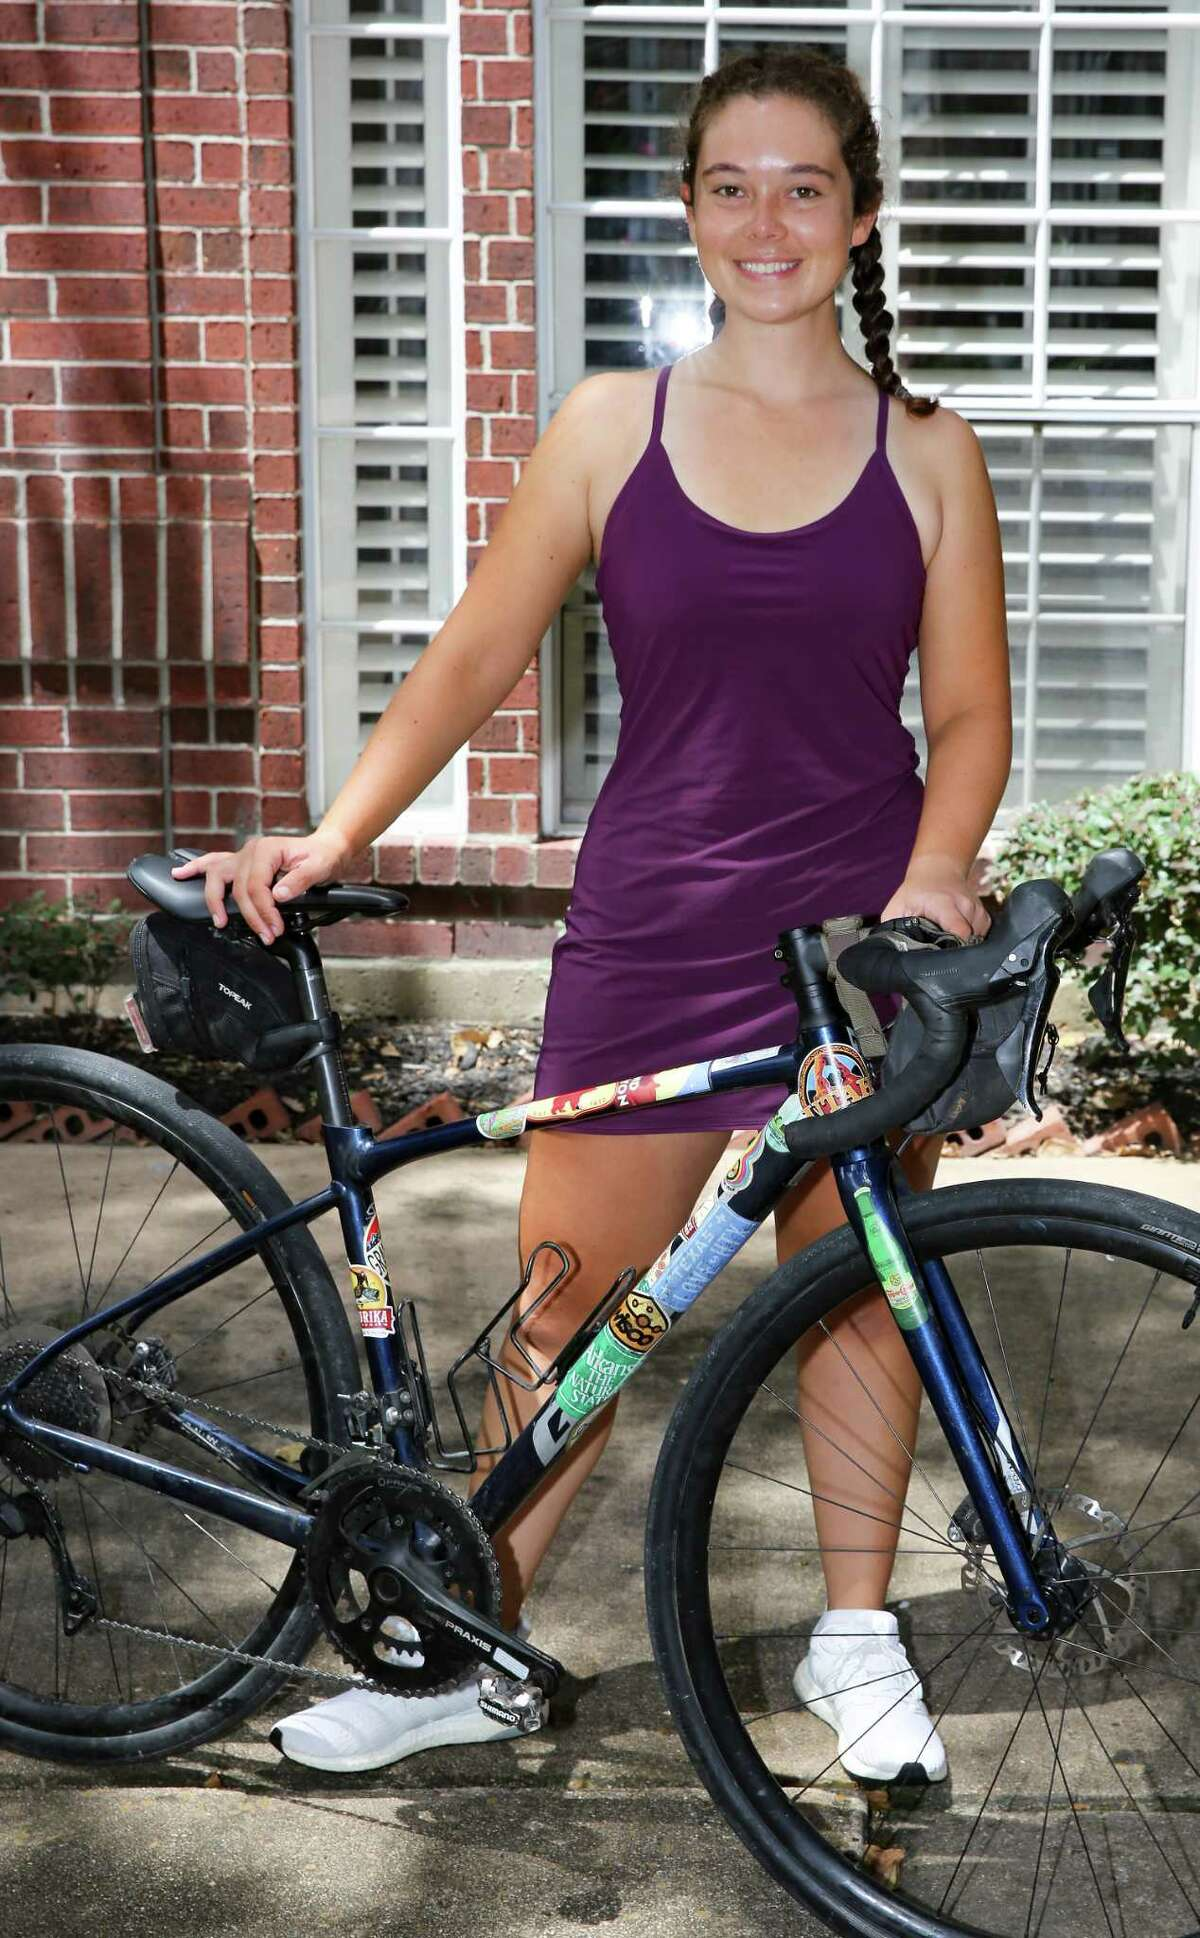 Lilian Velez, 23, at her home in Houston on Friday, Aug. 20, 2021. Velez survived ovarian cancer at age 13. She just returned a bike ride across the U.S. to raise money for cancer.